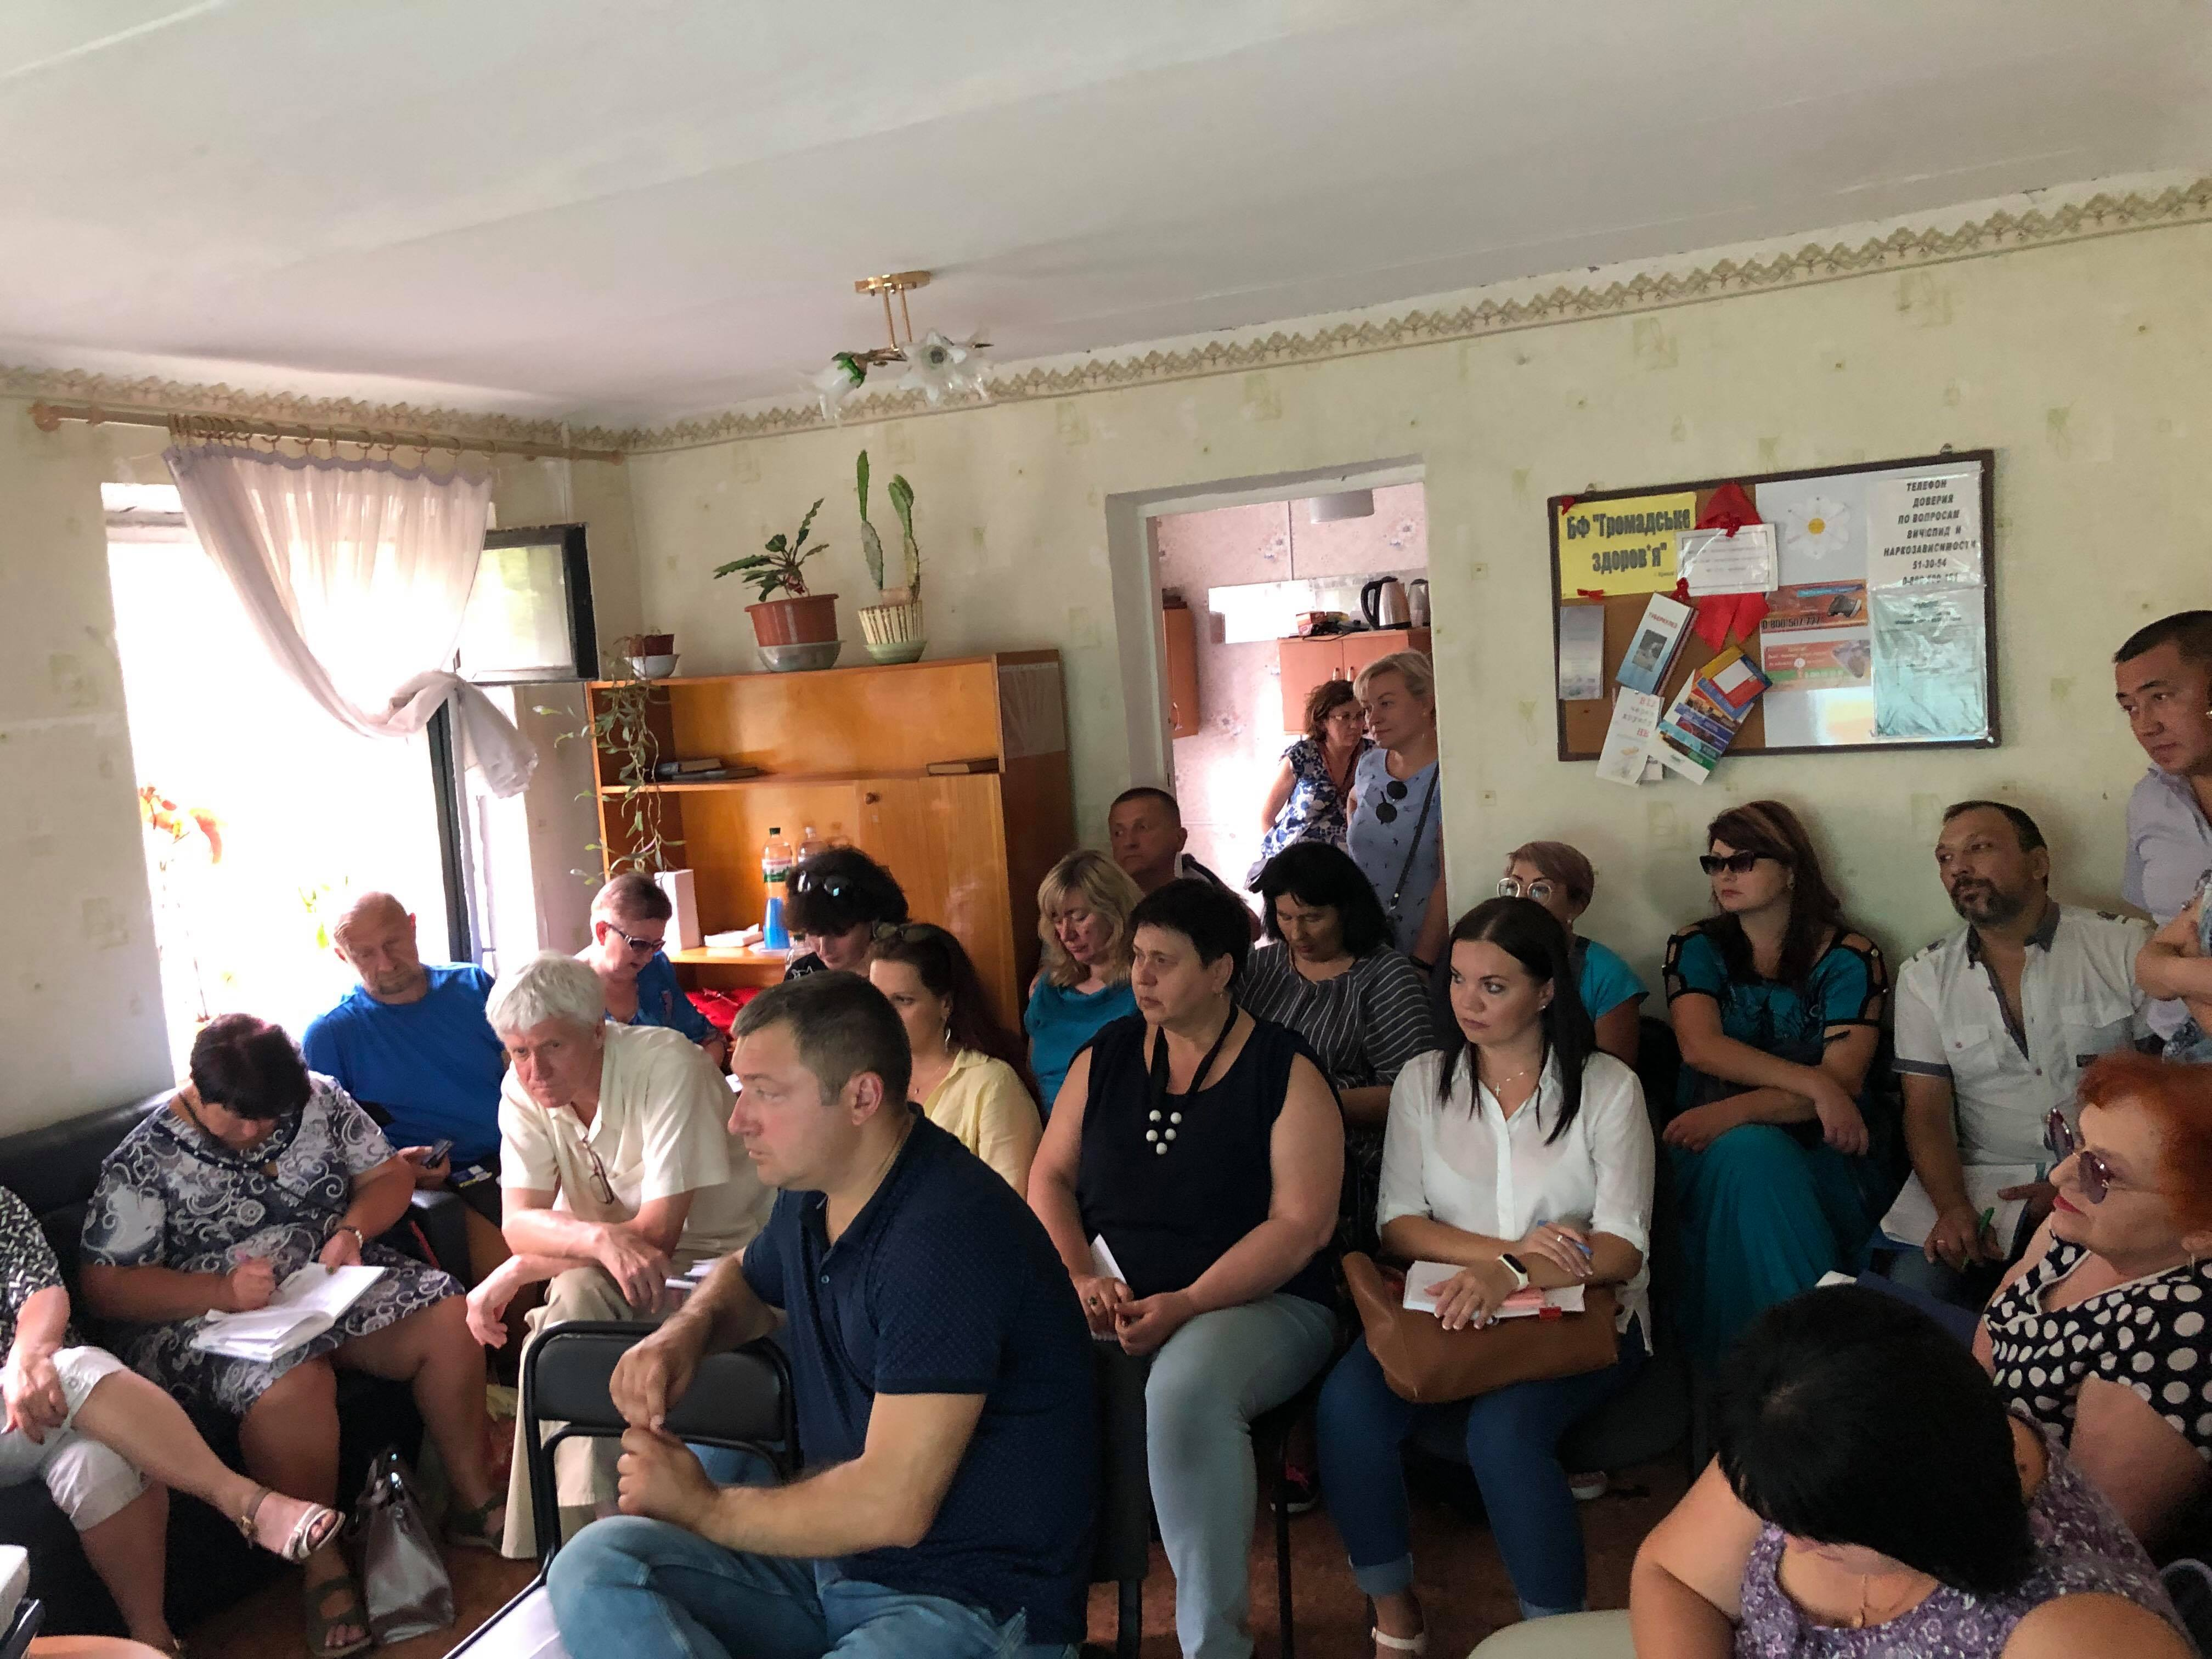 Technical support visit took place in Dnipropetrovsk region